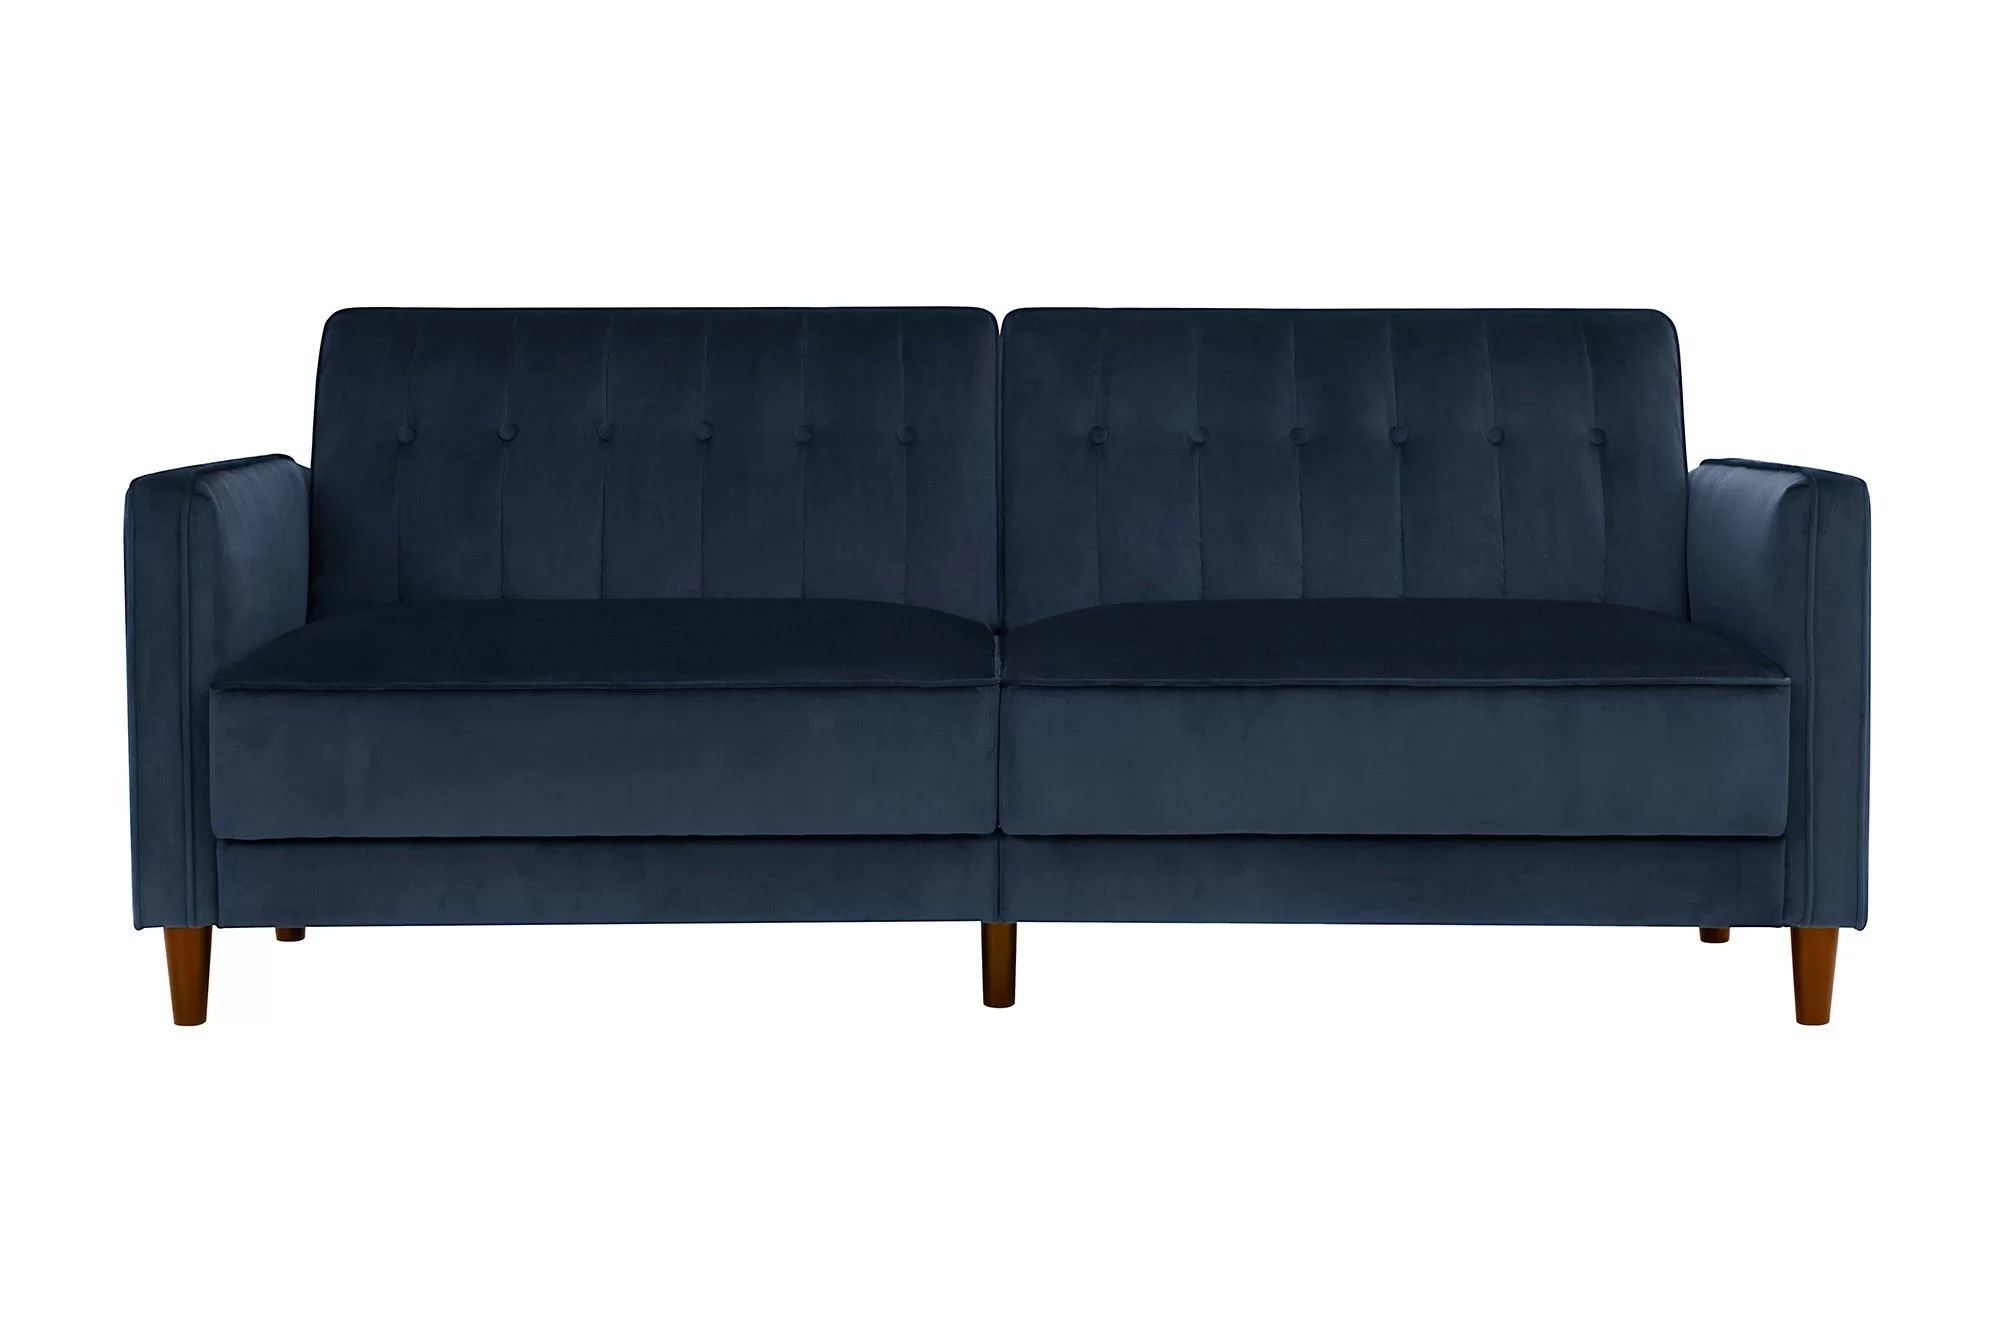 Chesterfield Sofa Riess Ambiente Willa Arlo Interiors Allmodern